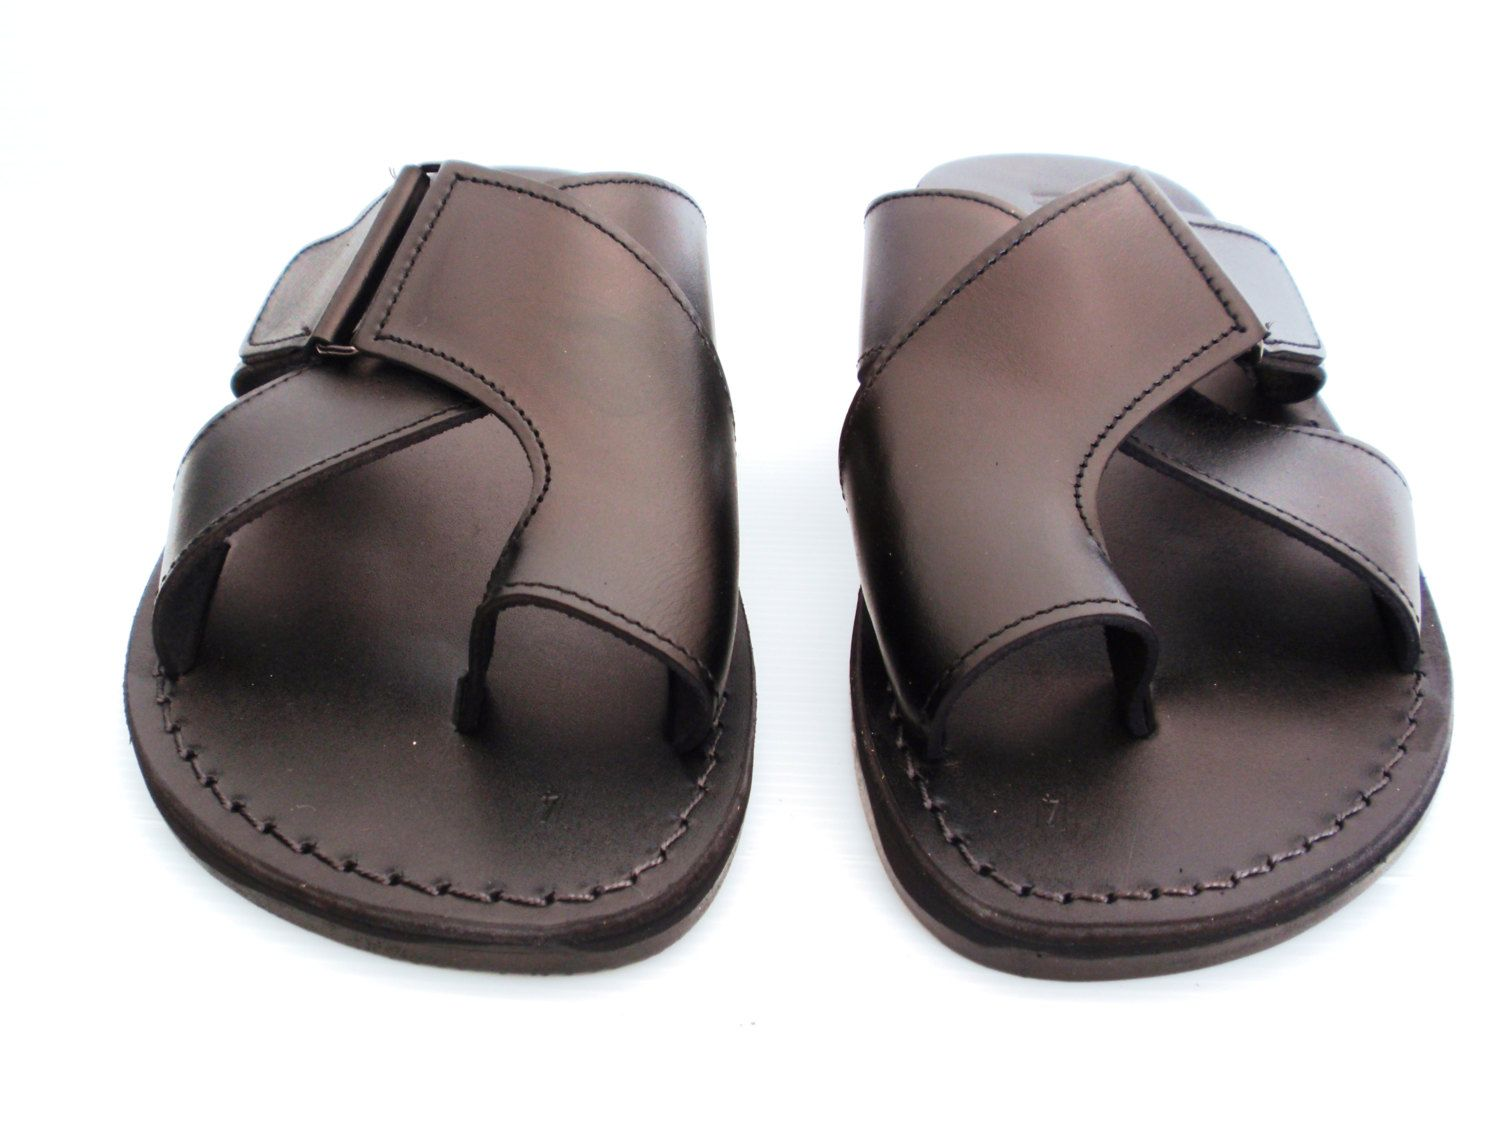 b45289a7c79a9 Summer Beach Sandals, Brown Leather Sandals for women and Men ...